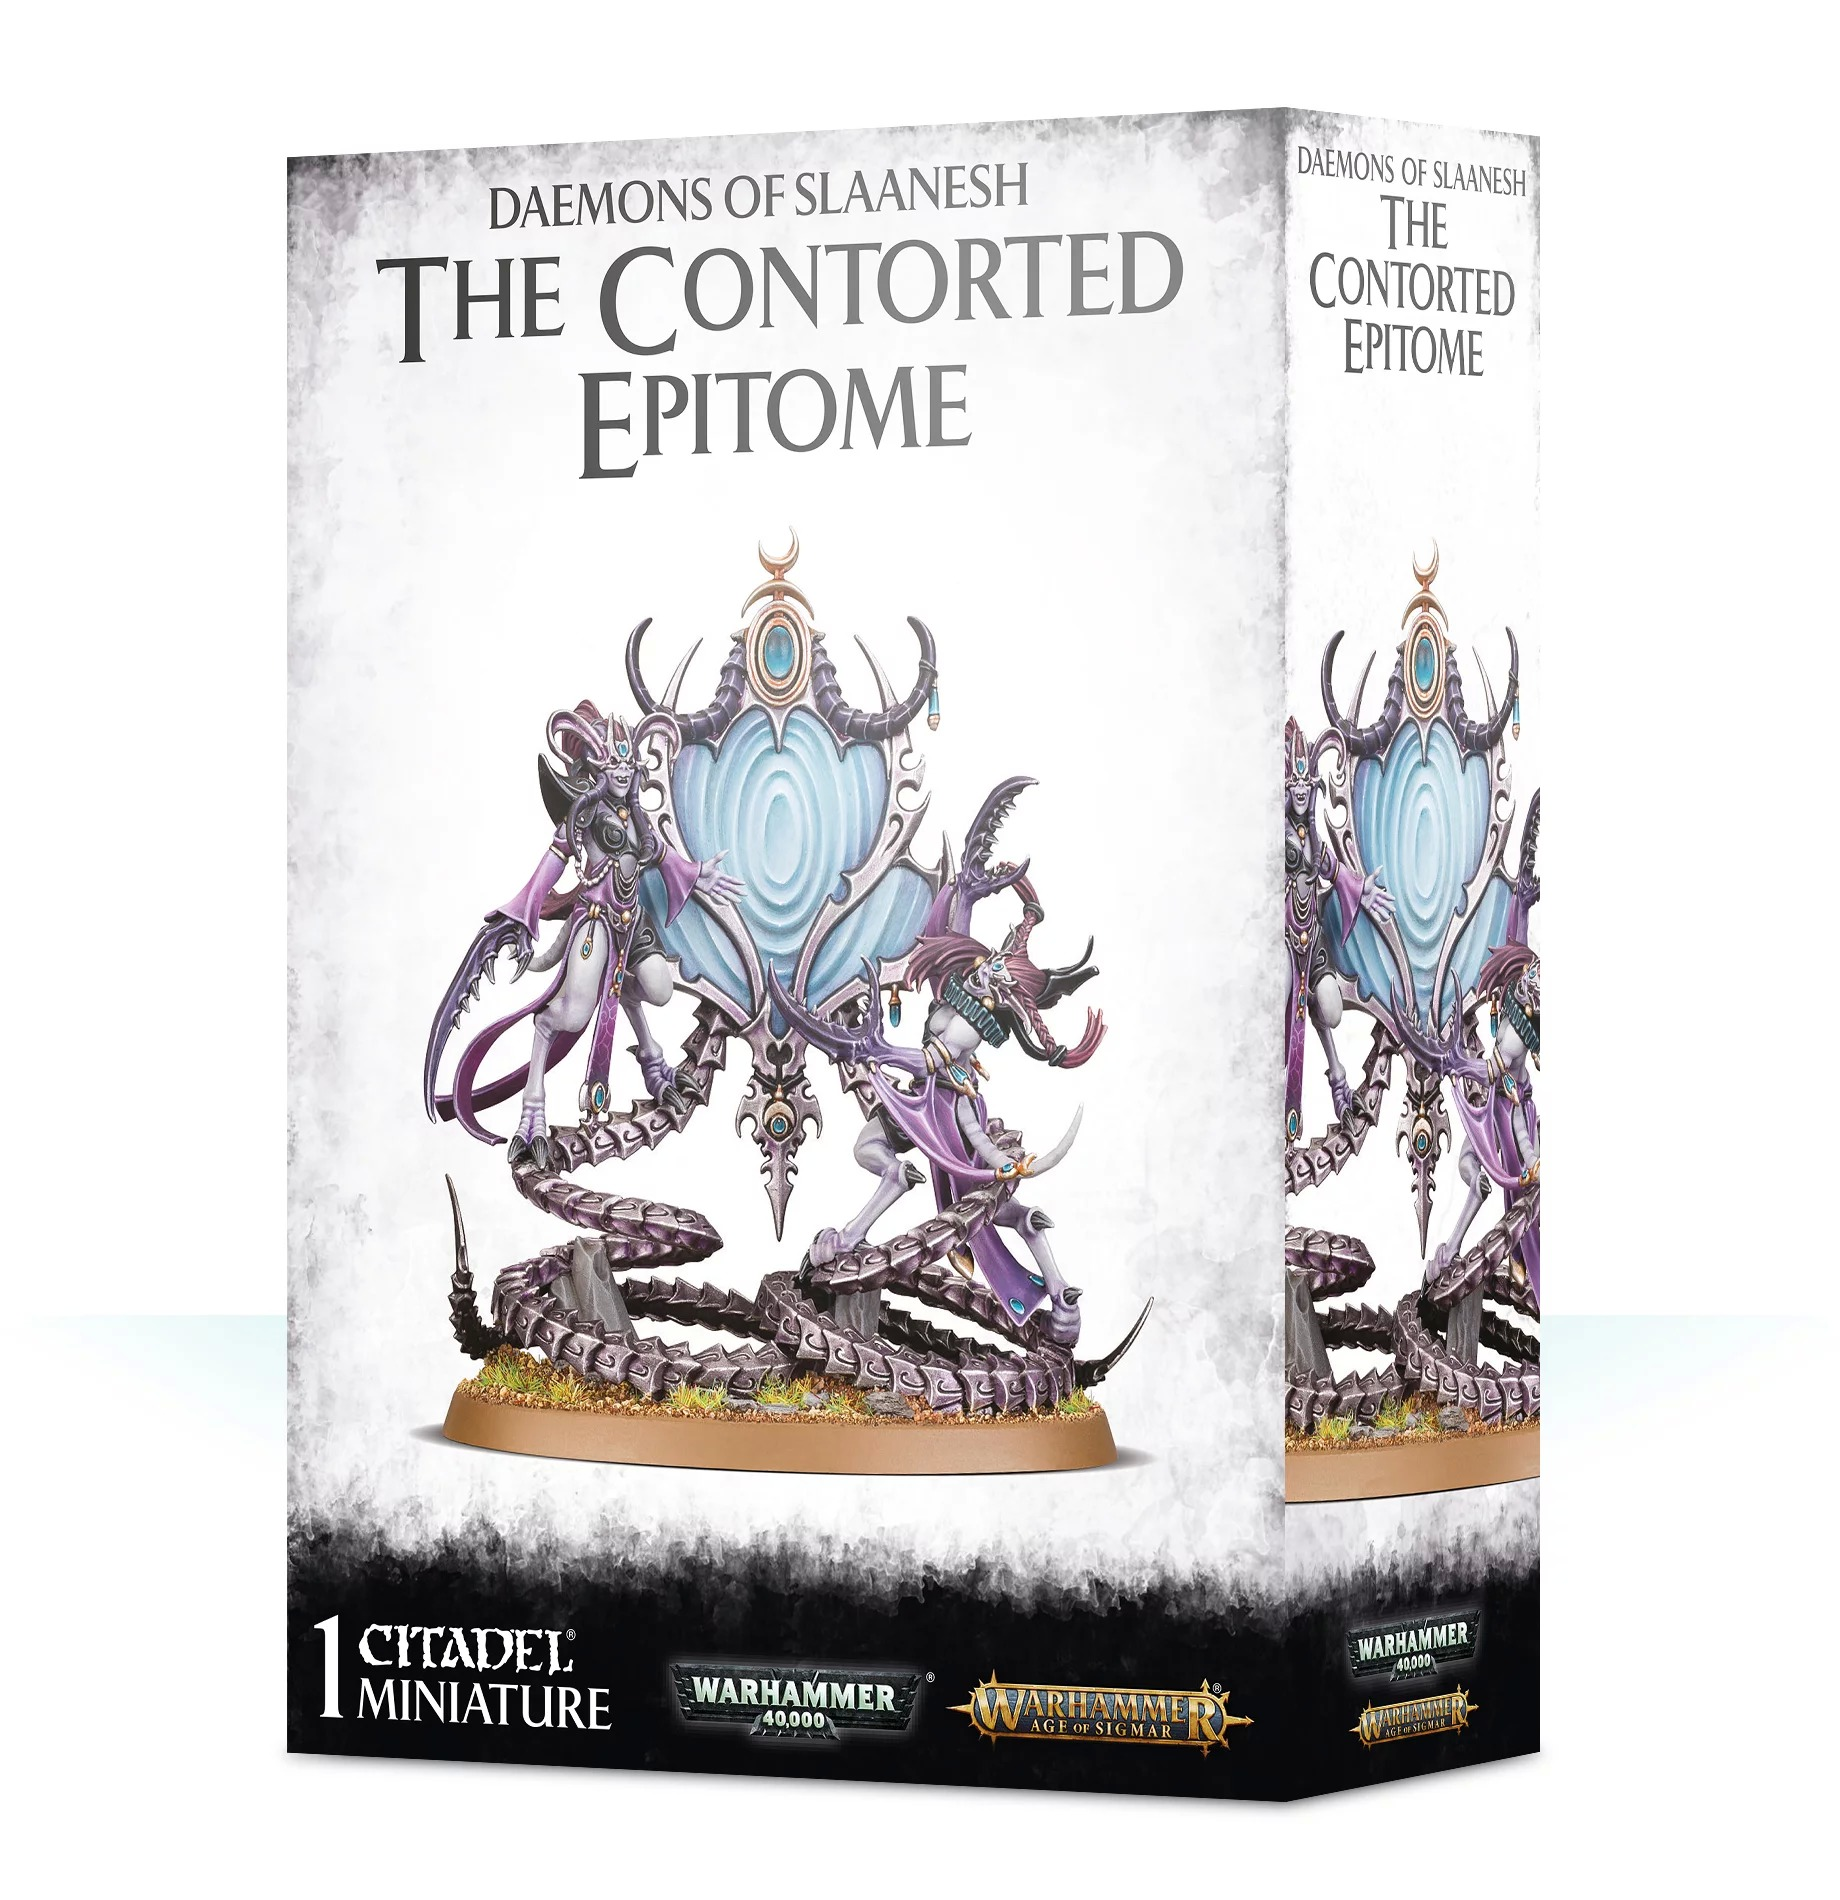 Warhammer Age of Sigmar: Hedonites of Slaanesh: The Contorted Epitome